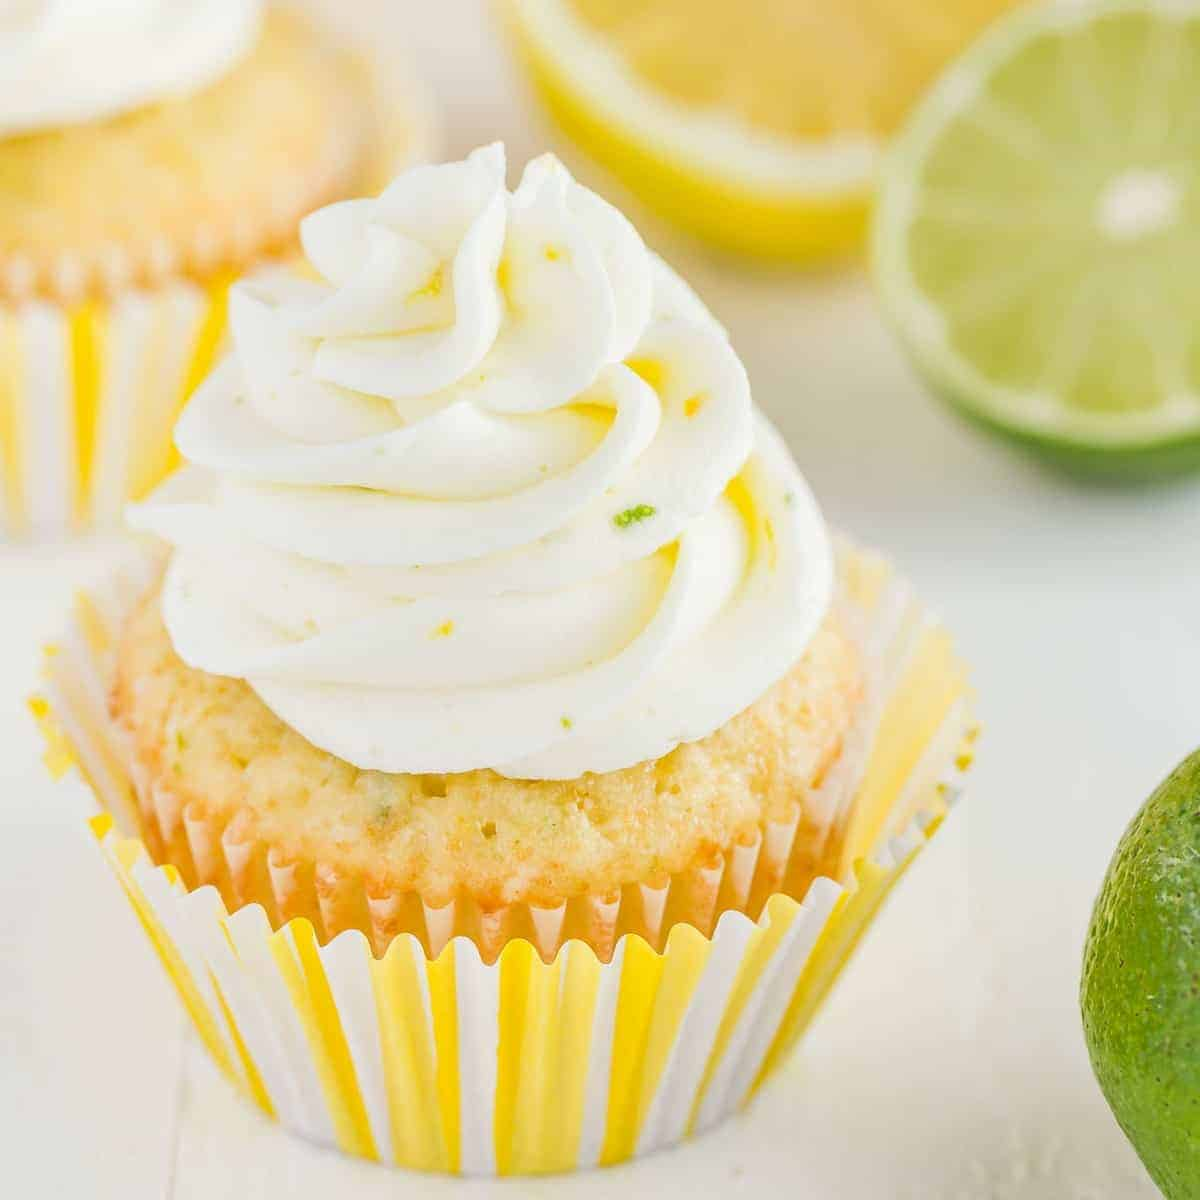 Side view of lemon lime cupcakes on a white background with slices of lemon and lime.